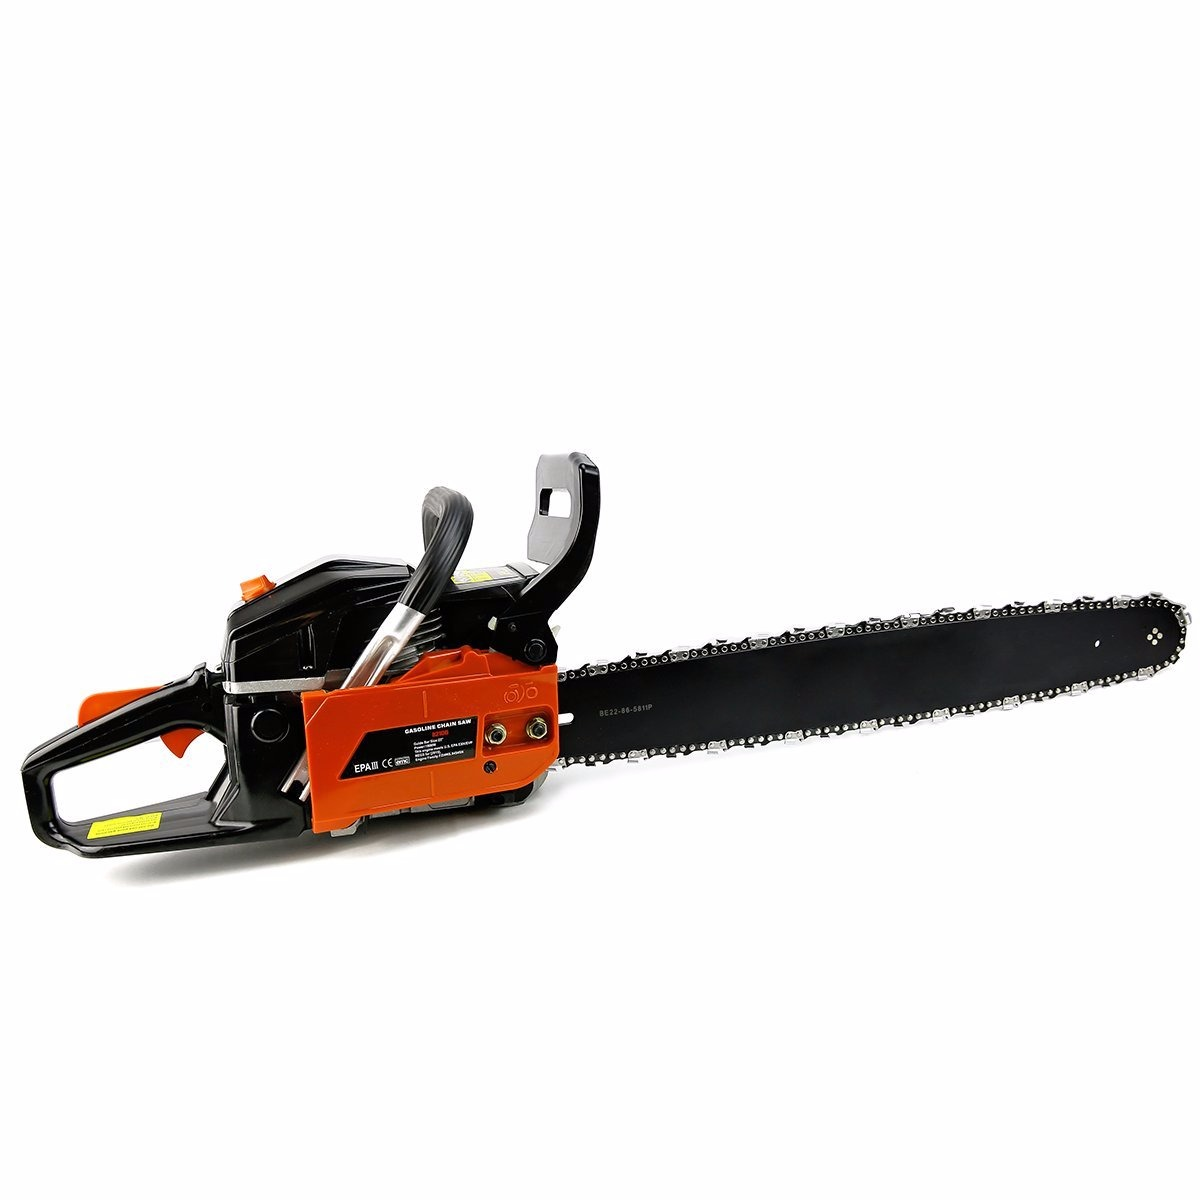 "Stark 52 cc Gas Powered 22"" Chainsaw by Generic"